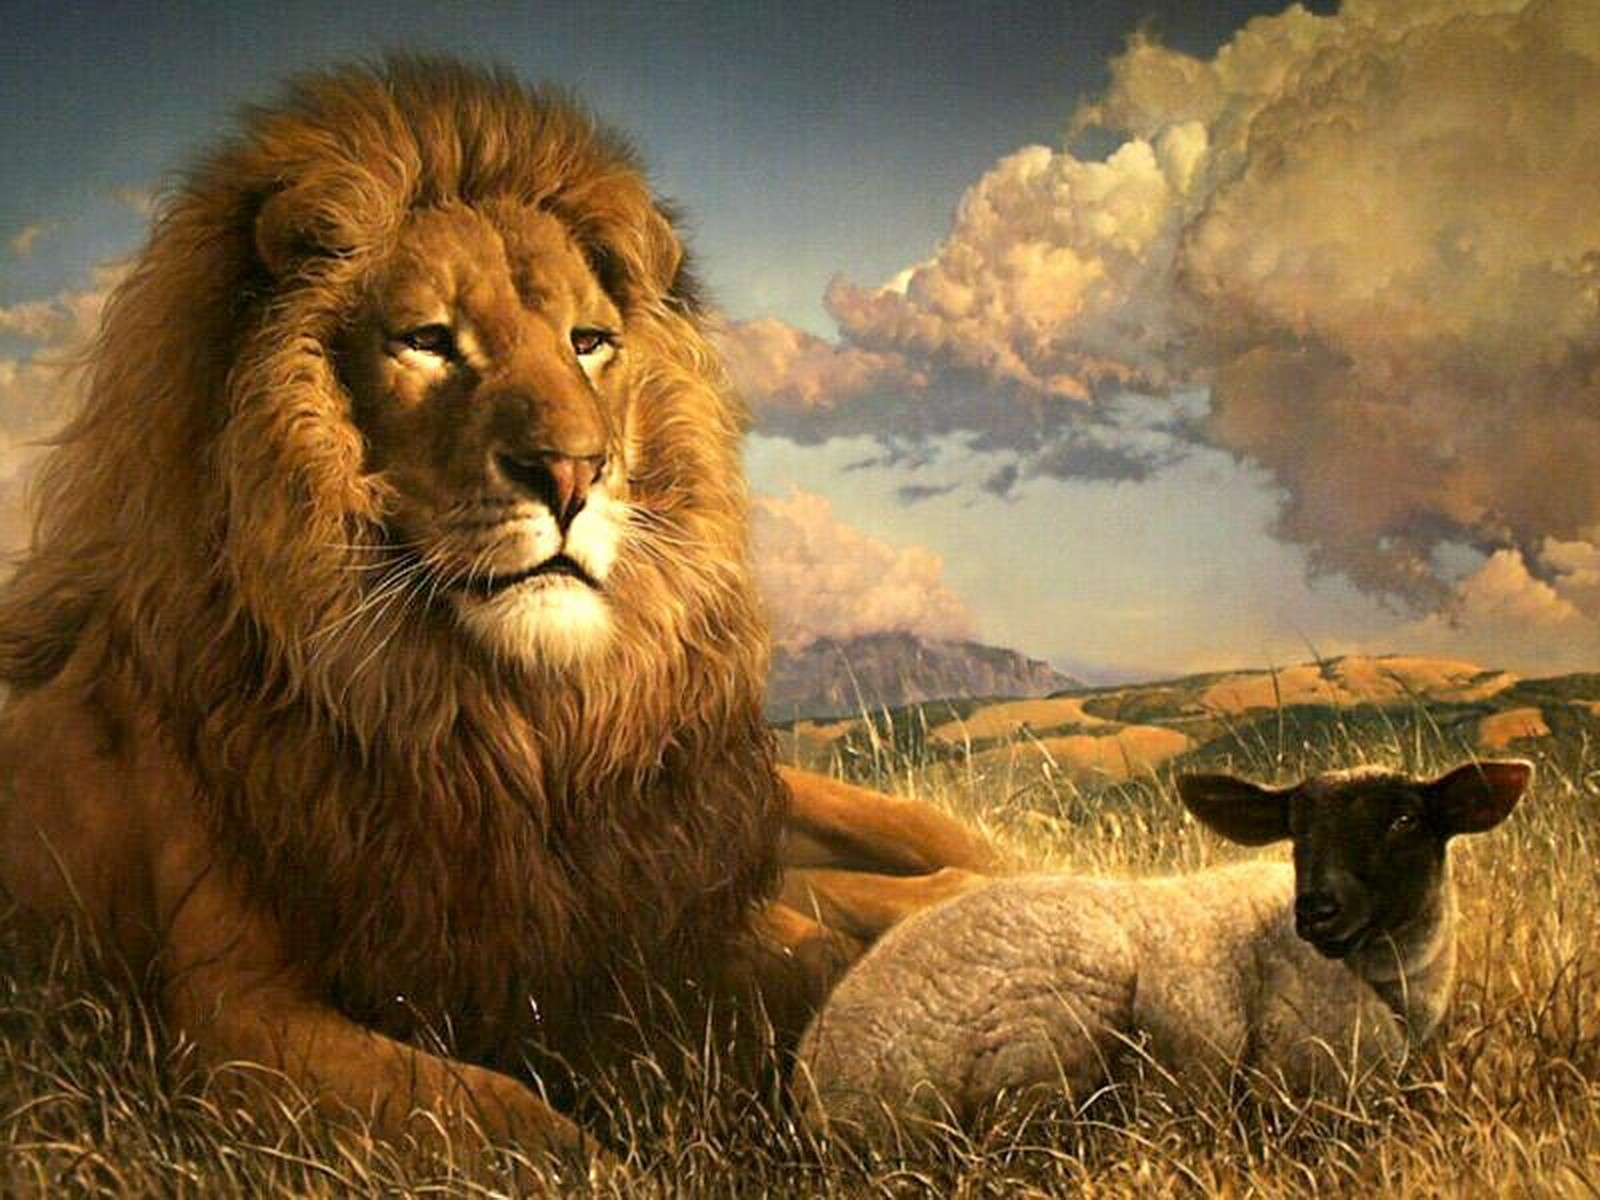 http://1.bp.blogspot.com/-Yea08qhFisw/T3mrqgX-HSI/AAAAAAAABIg/bPeueSMNe4I/s1600/lion+and+the+sheep.jpg